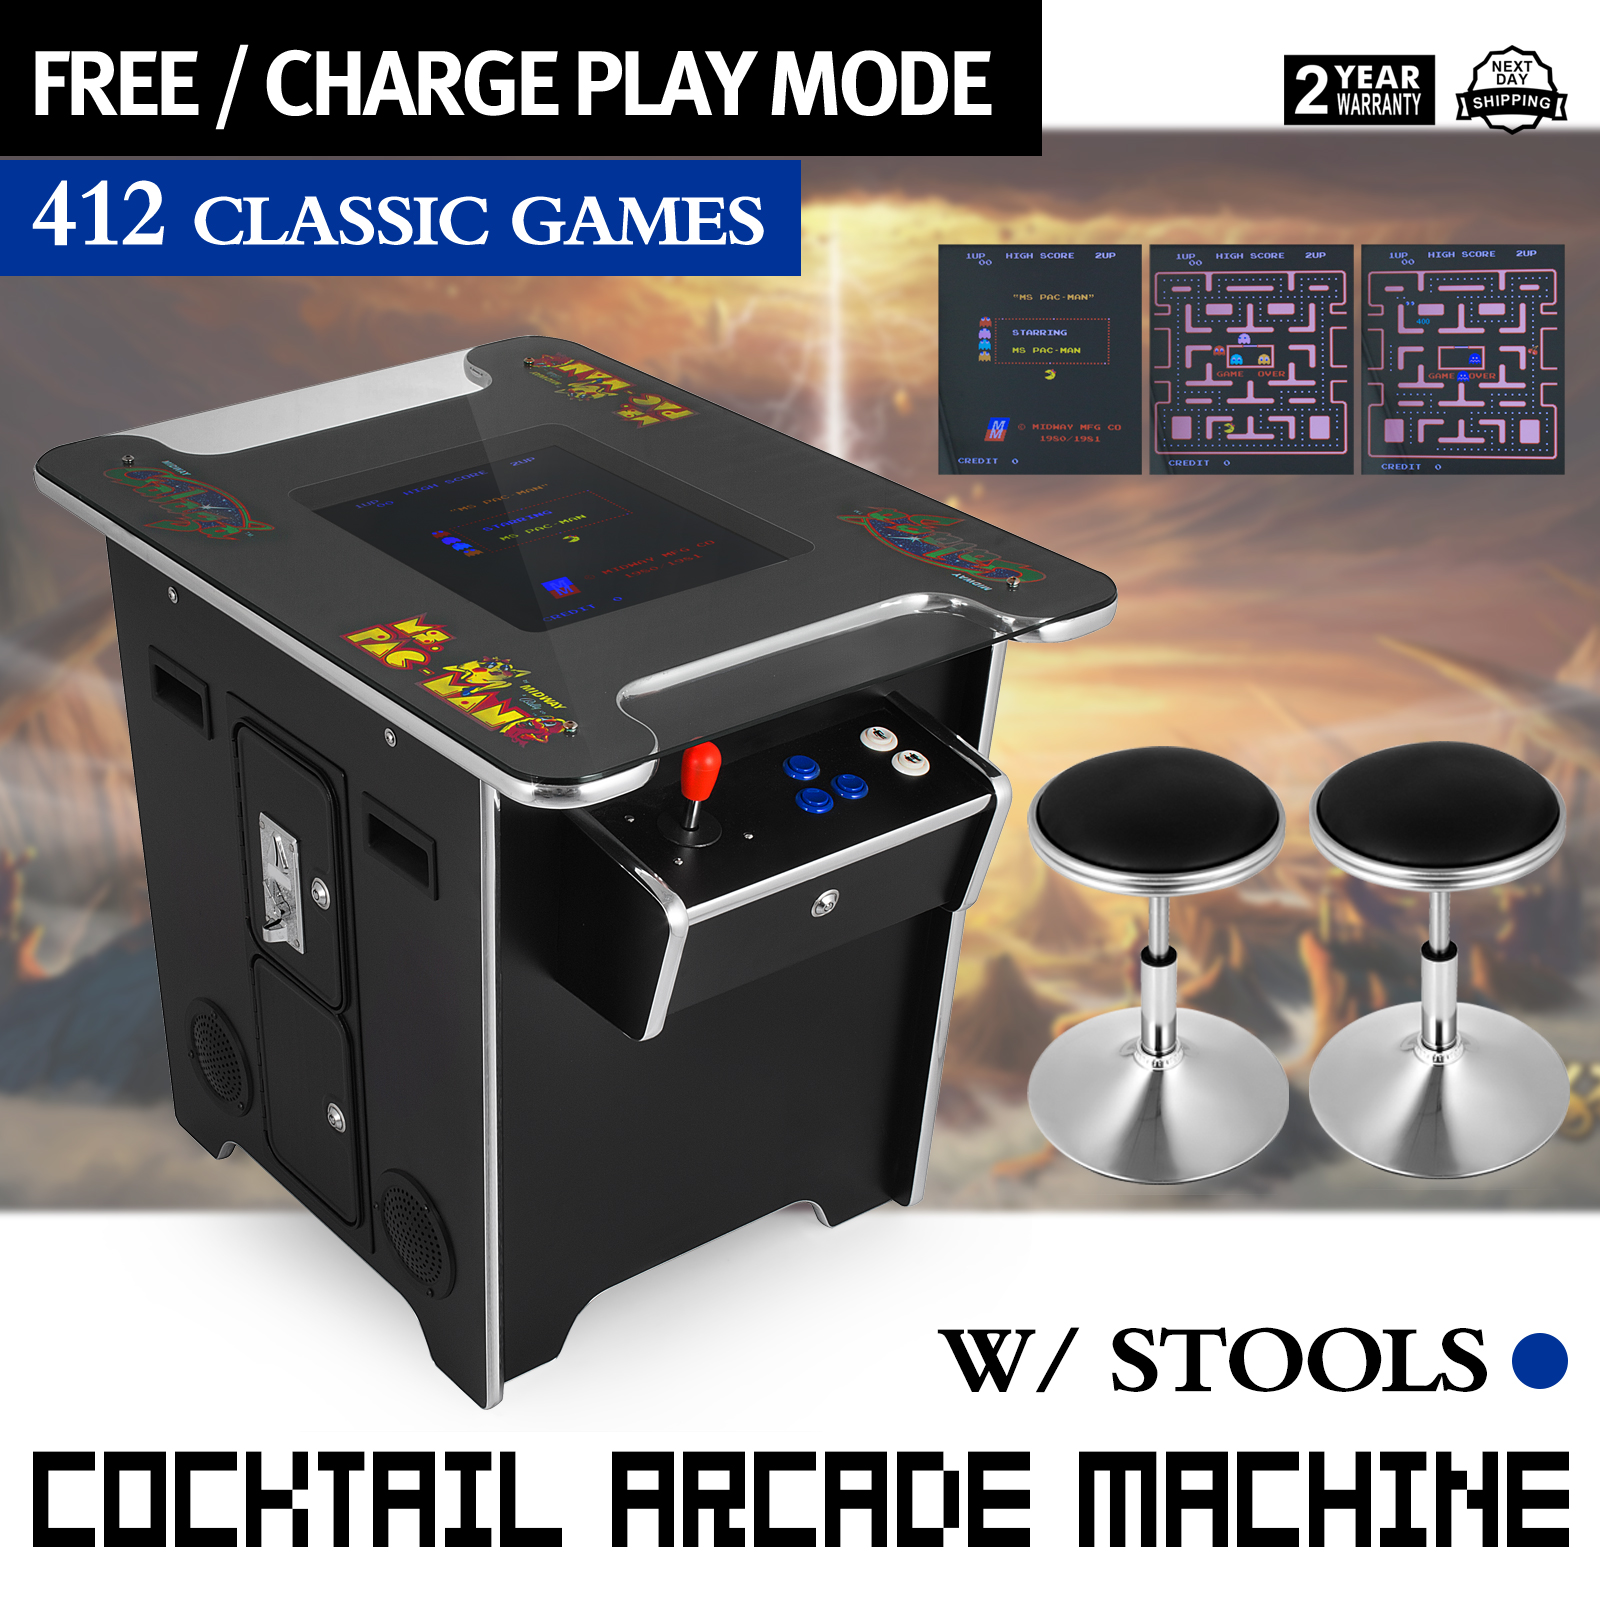 589d4a6b54fa1 Details about Video Game Machine Cocktail Arcade Machine with 412 Classic  Games